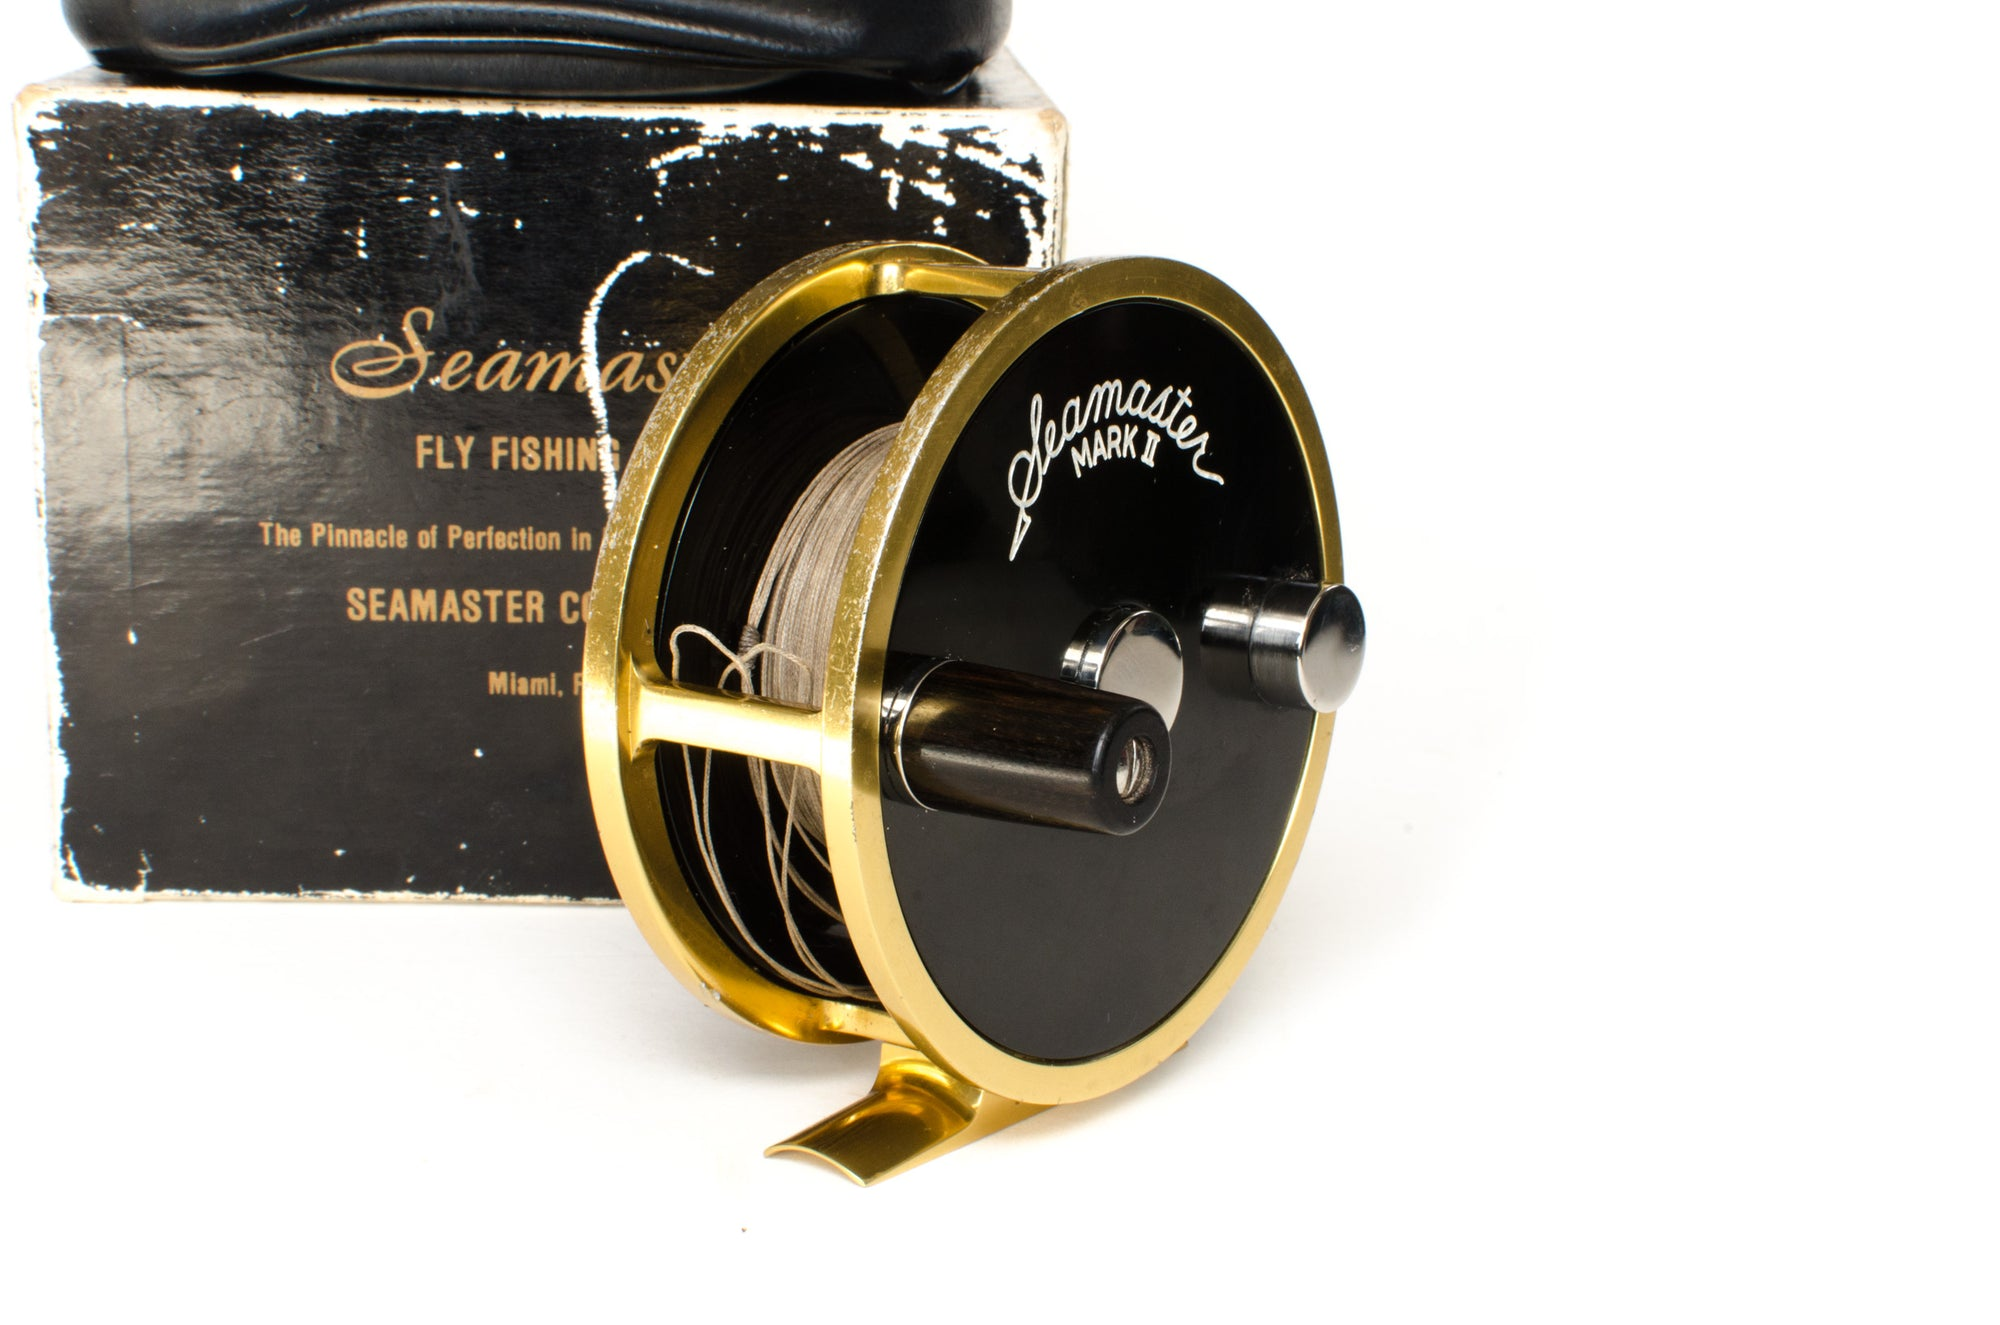 Seamaster Mark II Fly Reel